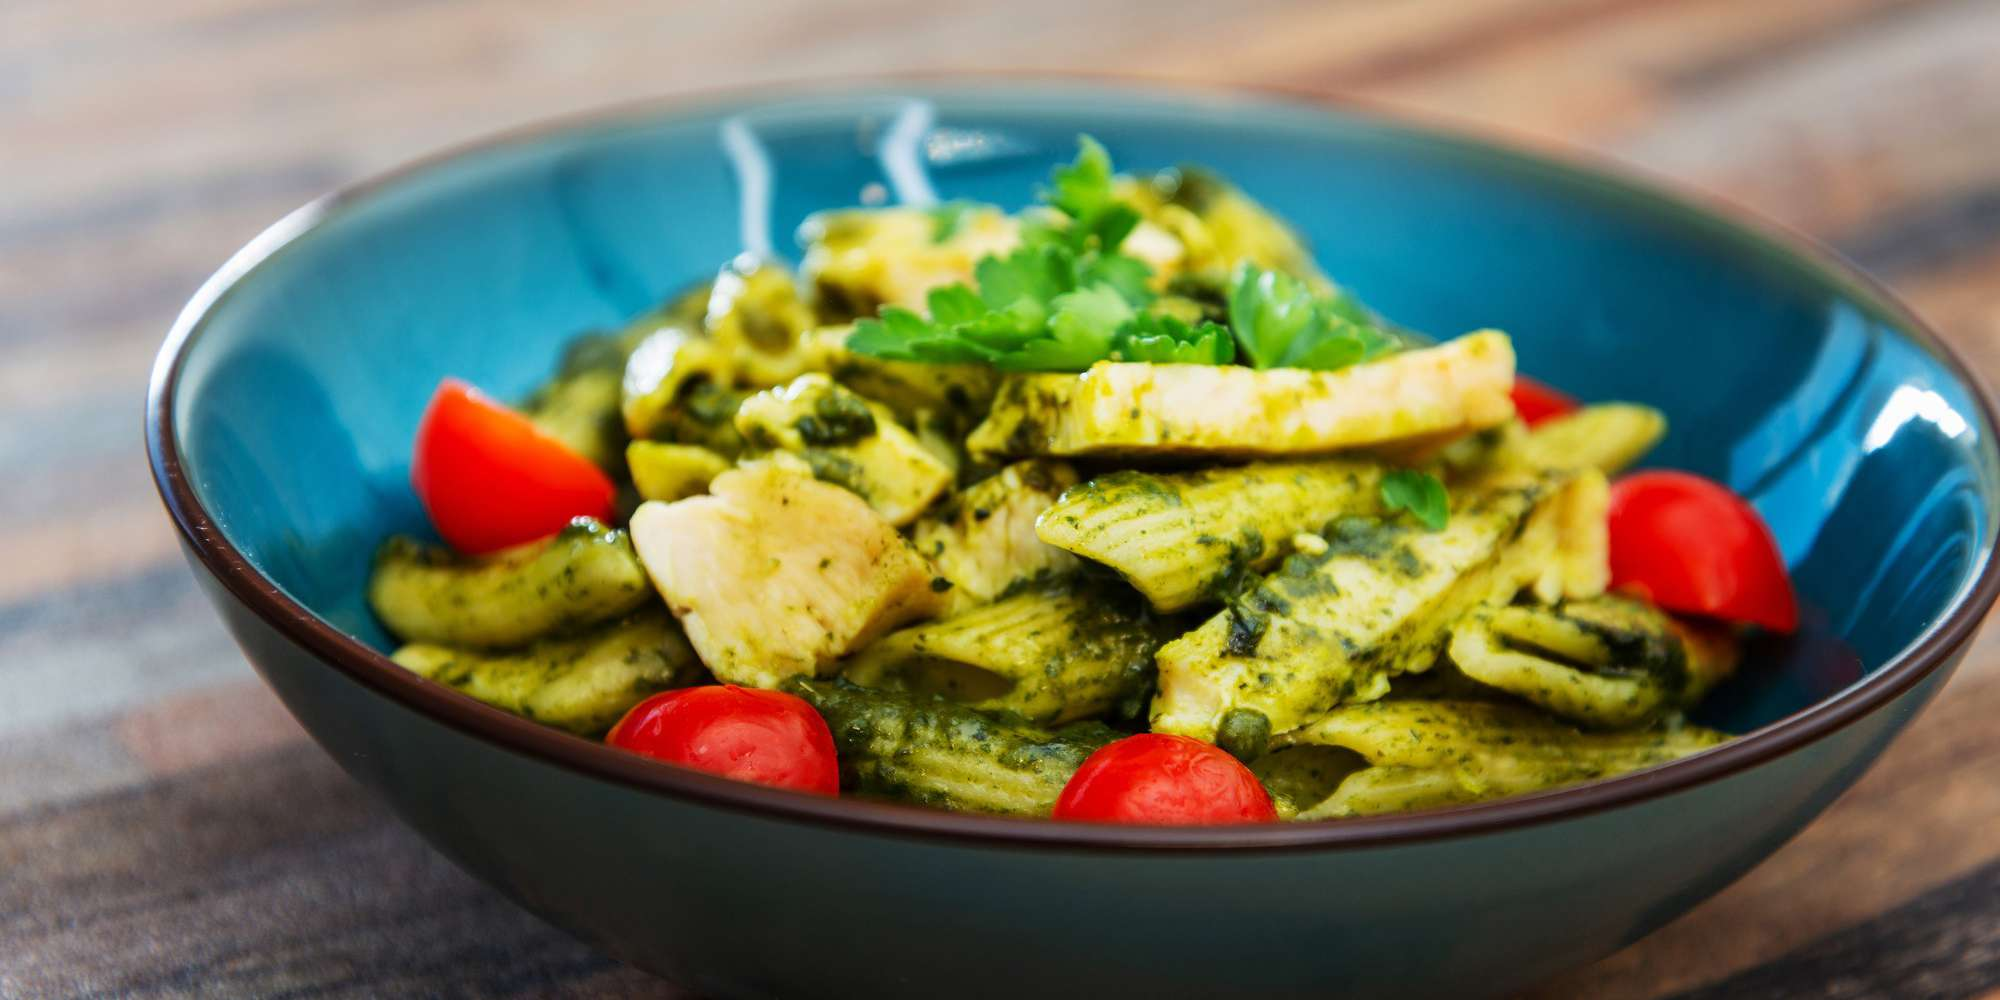 Warm Pesto Bowl with Chicken